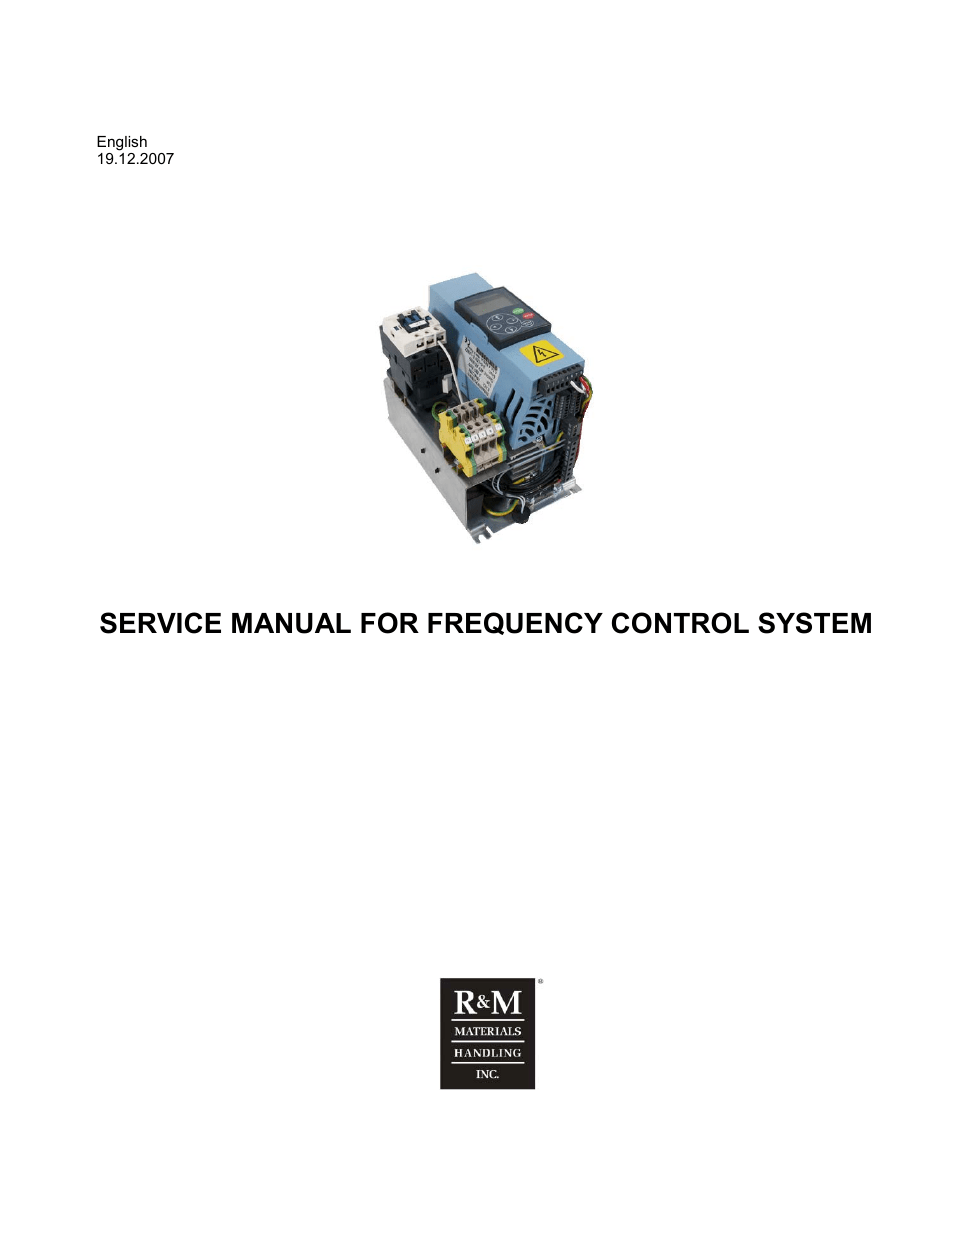 R&M Materials Handling VARIABLE SPEED CONTROLS